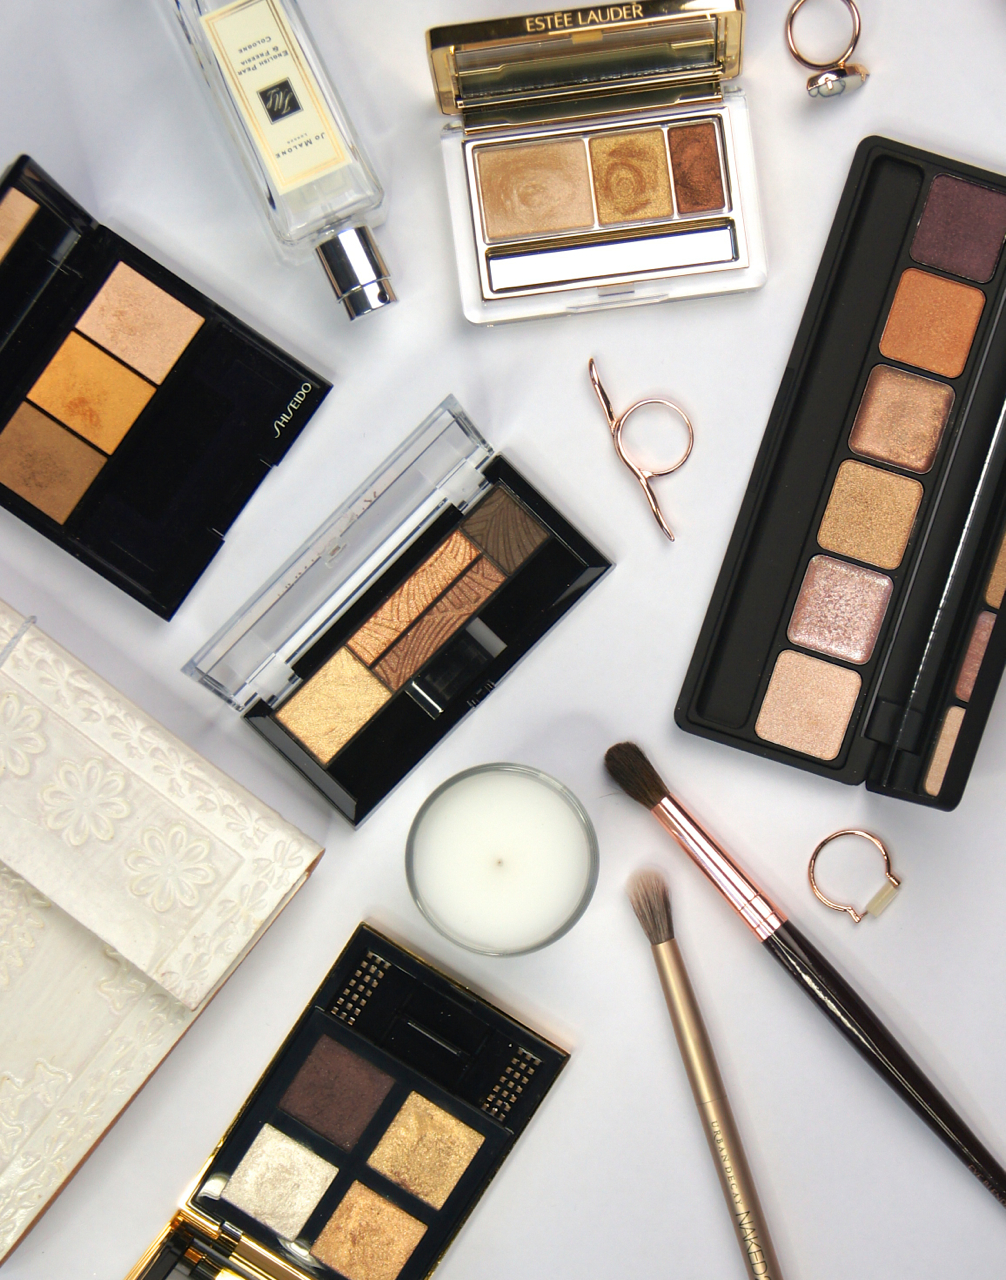 5 best gold toned eyeshadow palettes all budgets luxury and affordable options